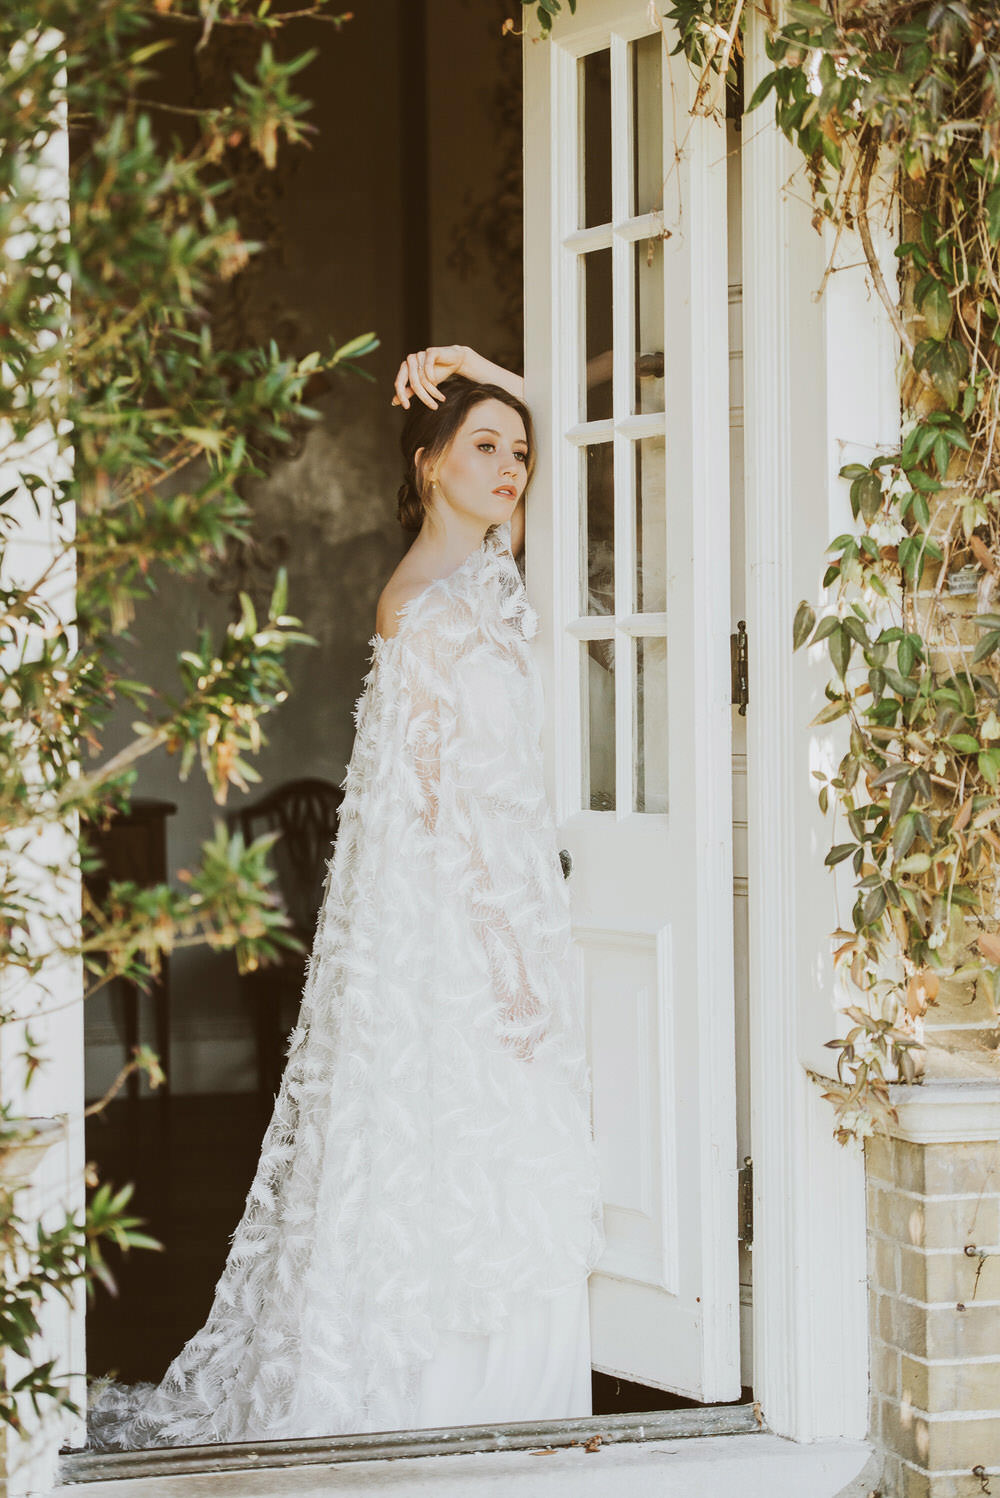 Bride Bridal Dress Gown Feather Embroidered Cape Willowby by Watters Green Gold Wedding Ideas Samantha Davis Photography